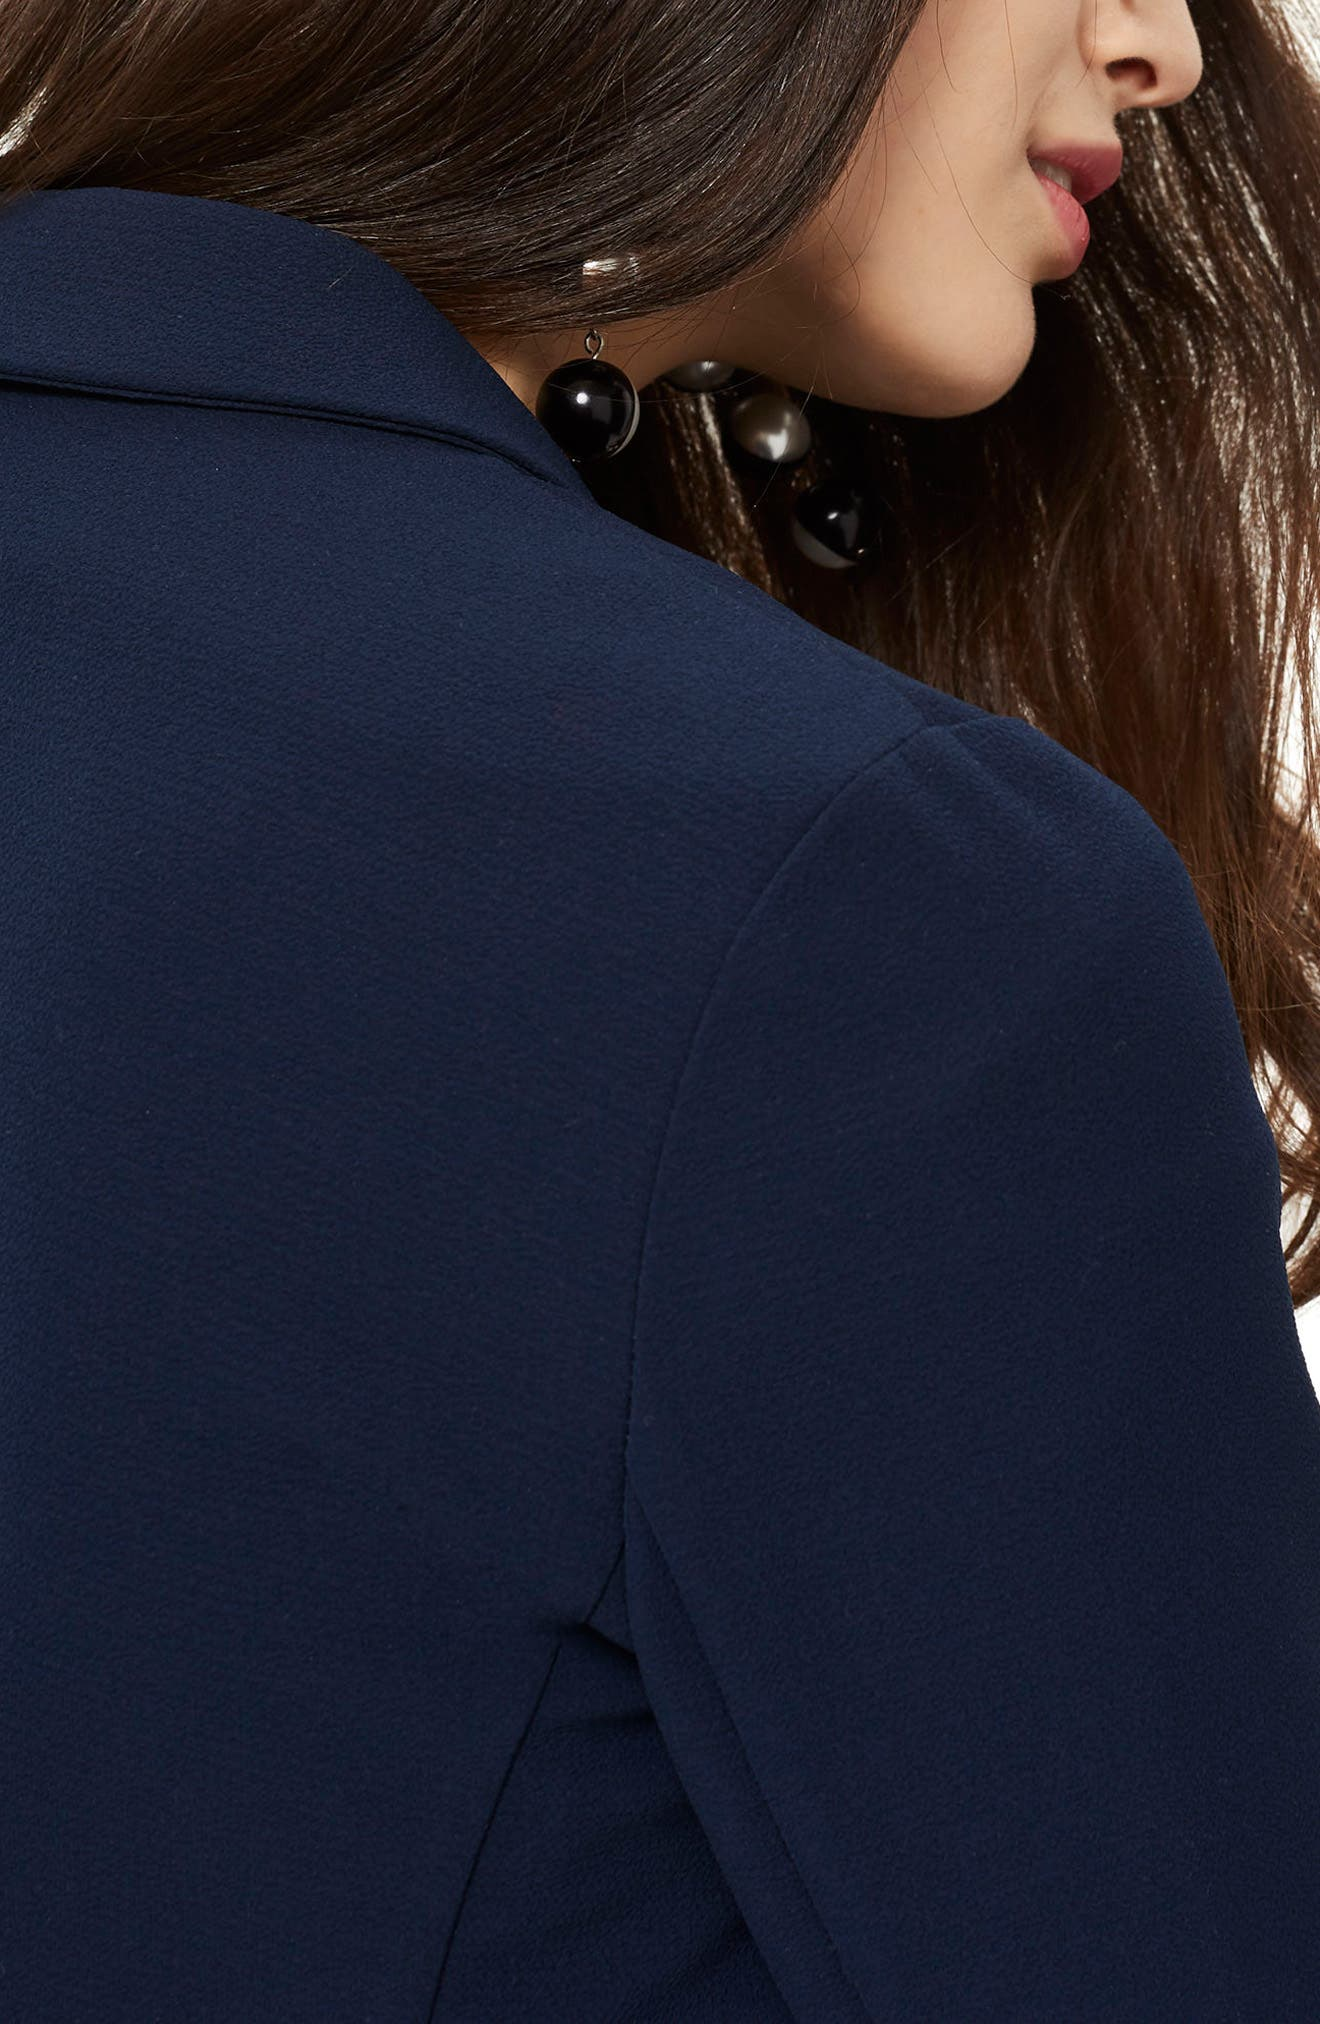 Bonded Bubble Crepe Jacket,                             Alternate thumbnail 3, color,                             Navy Blue